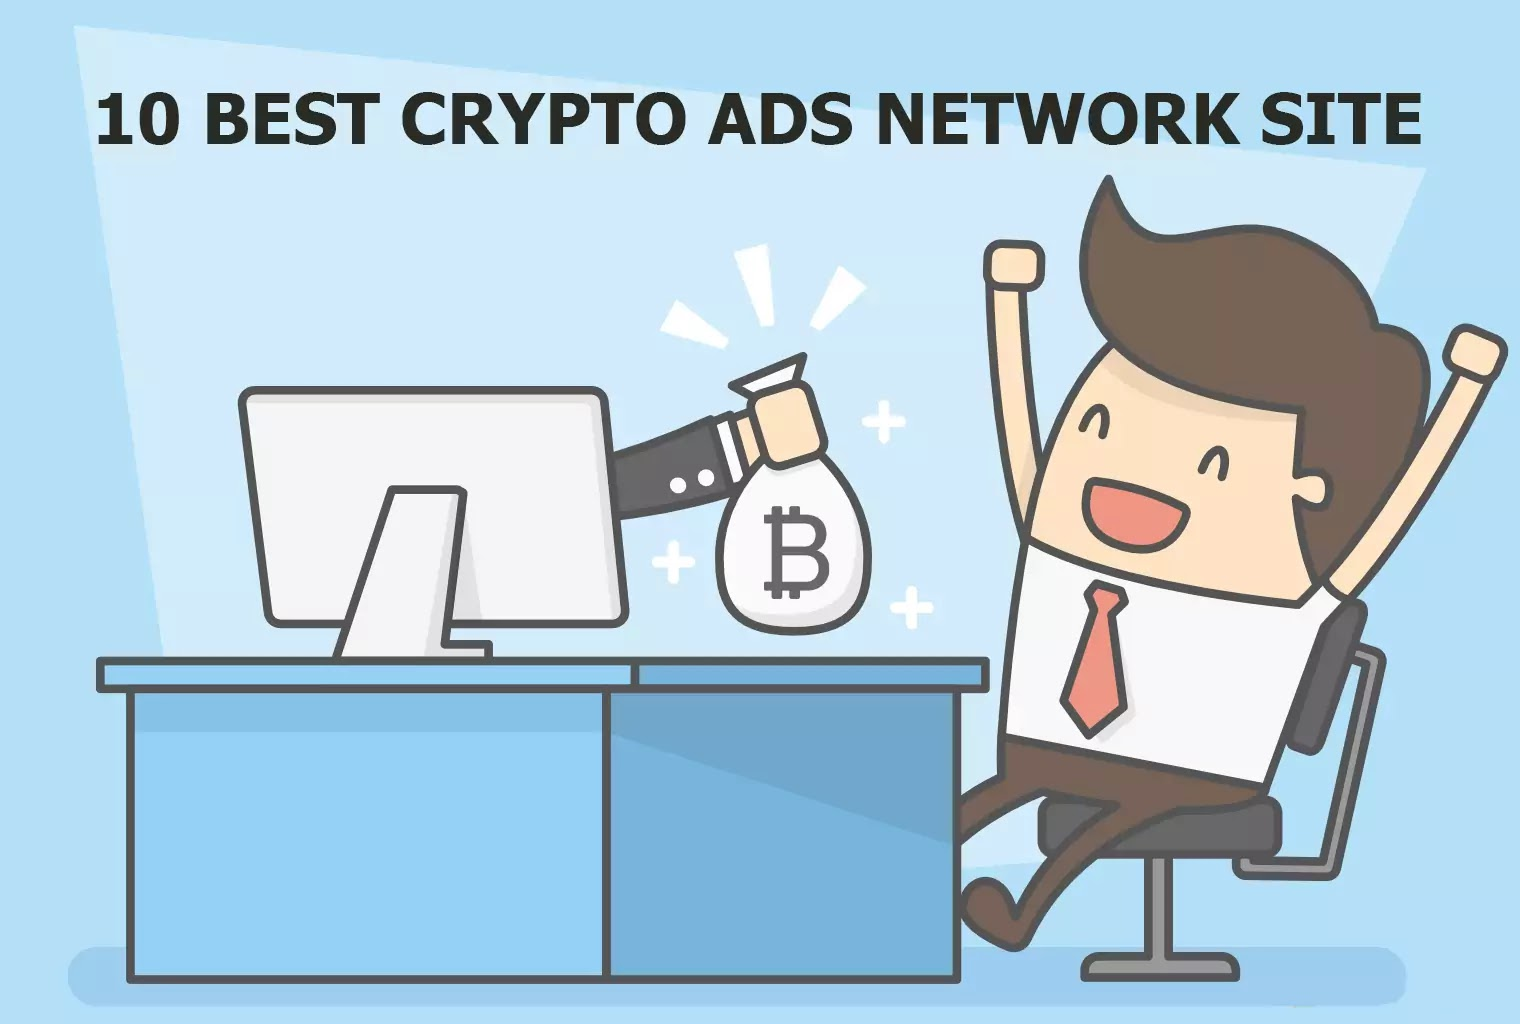 10 Best Crypto Ads Network Site | Top Bitcoin Ad Networks 2020